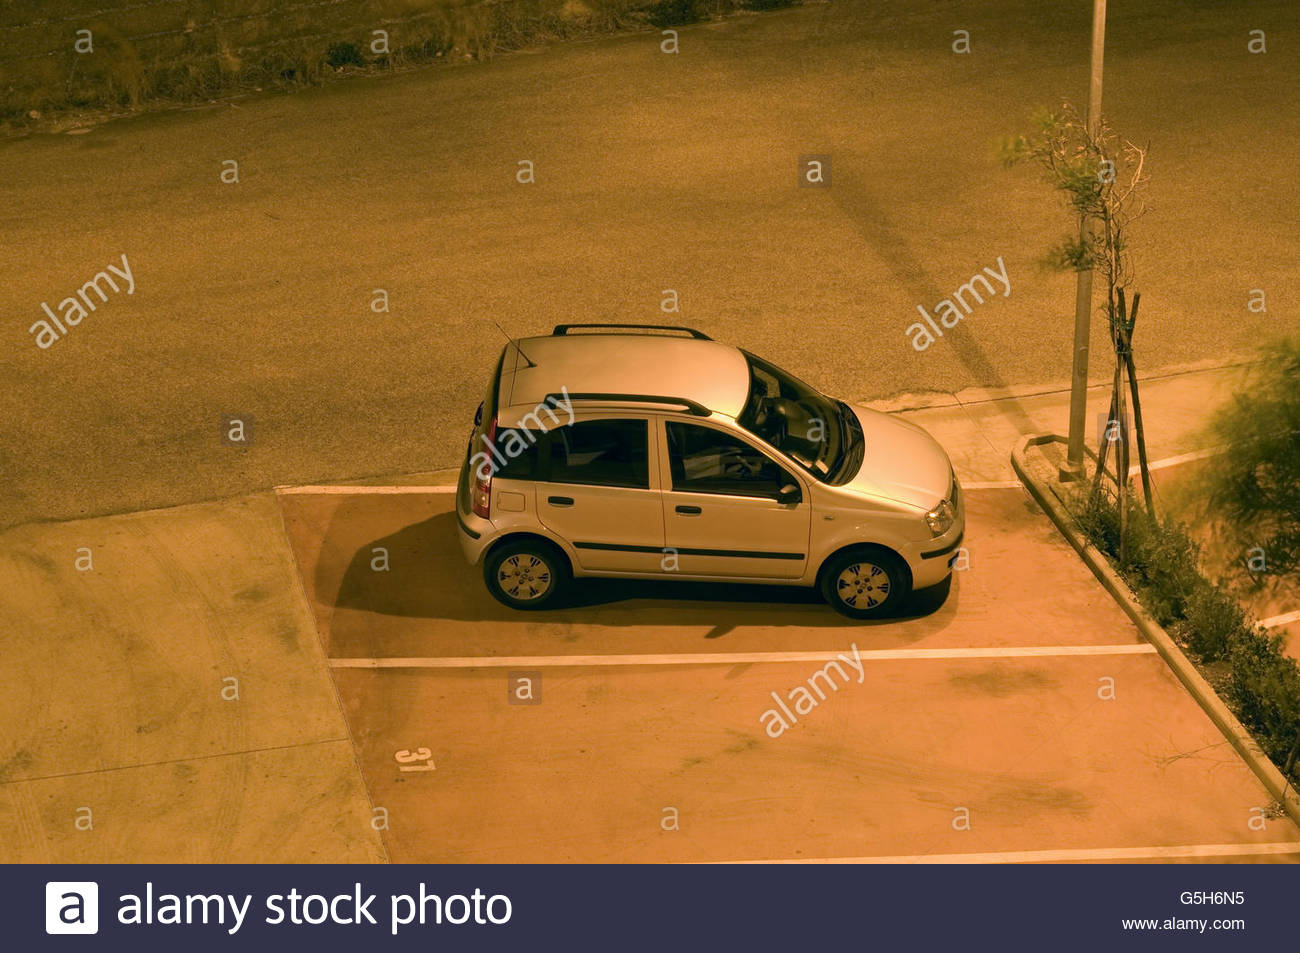 parked car at night - Stock Image